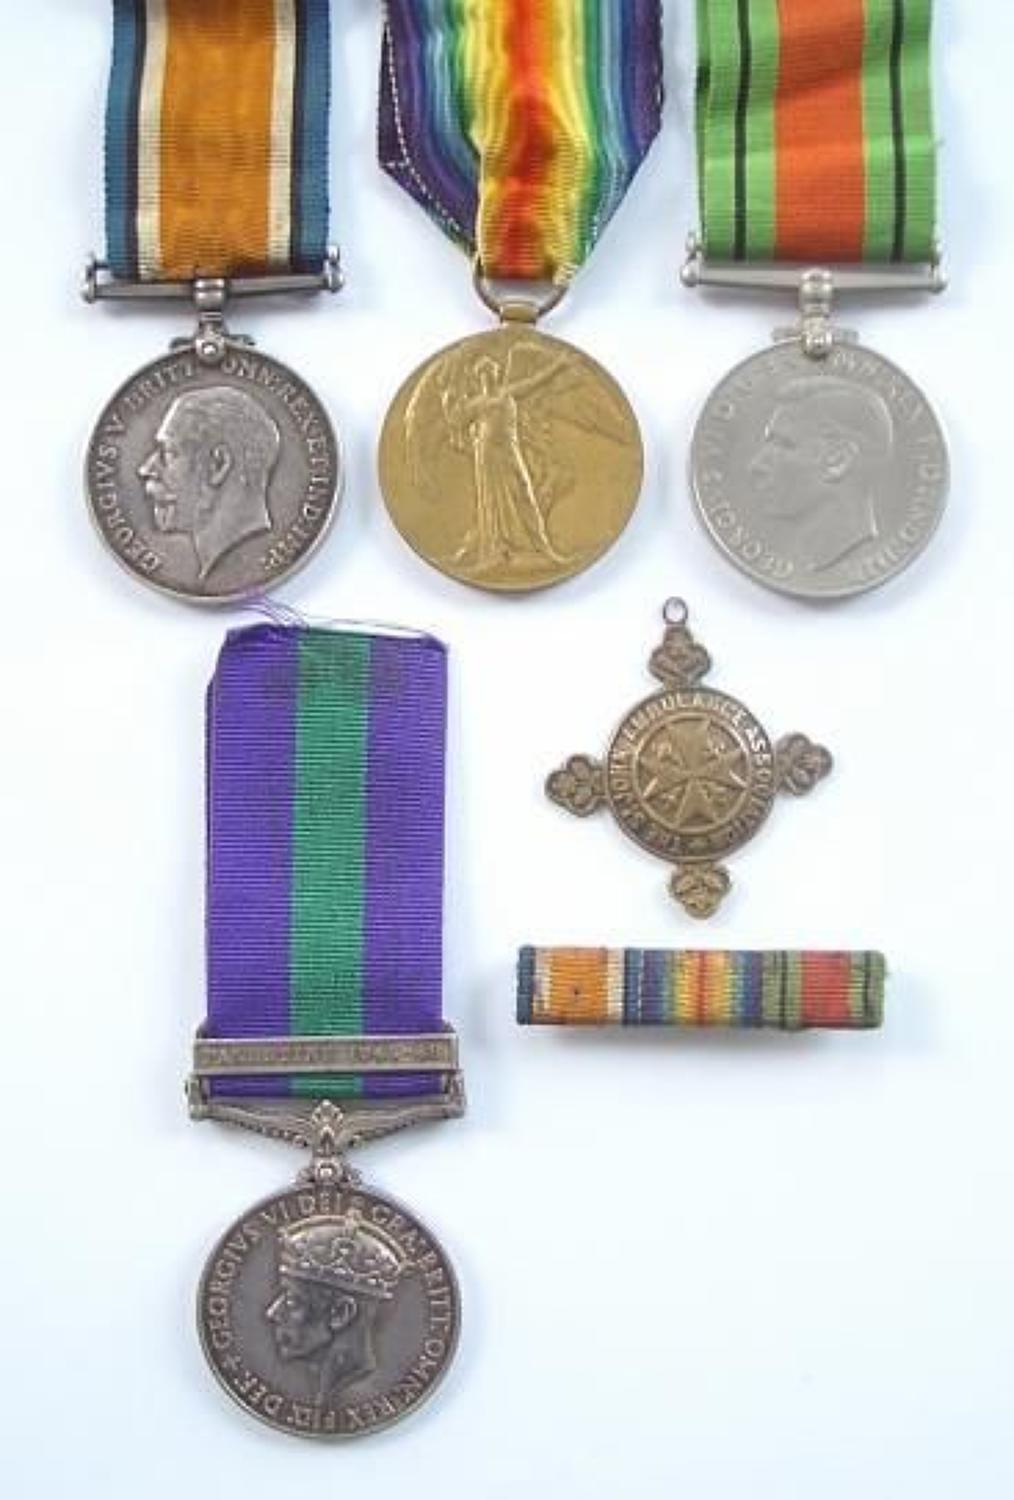 Royal Artillery / REME Family Group of Medals.